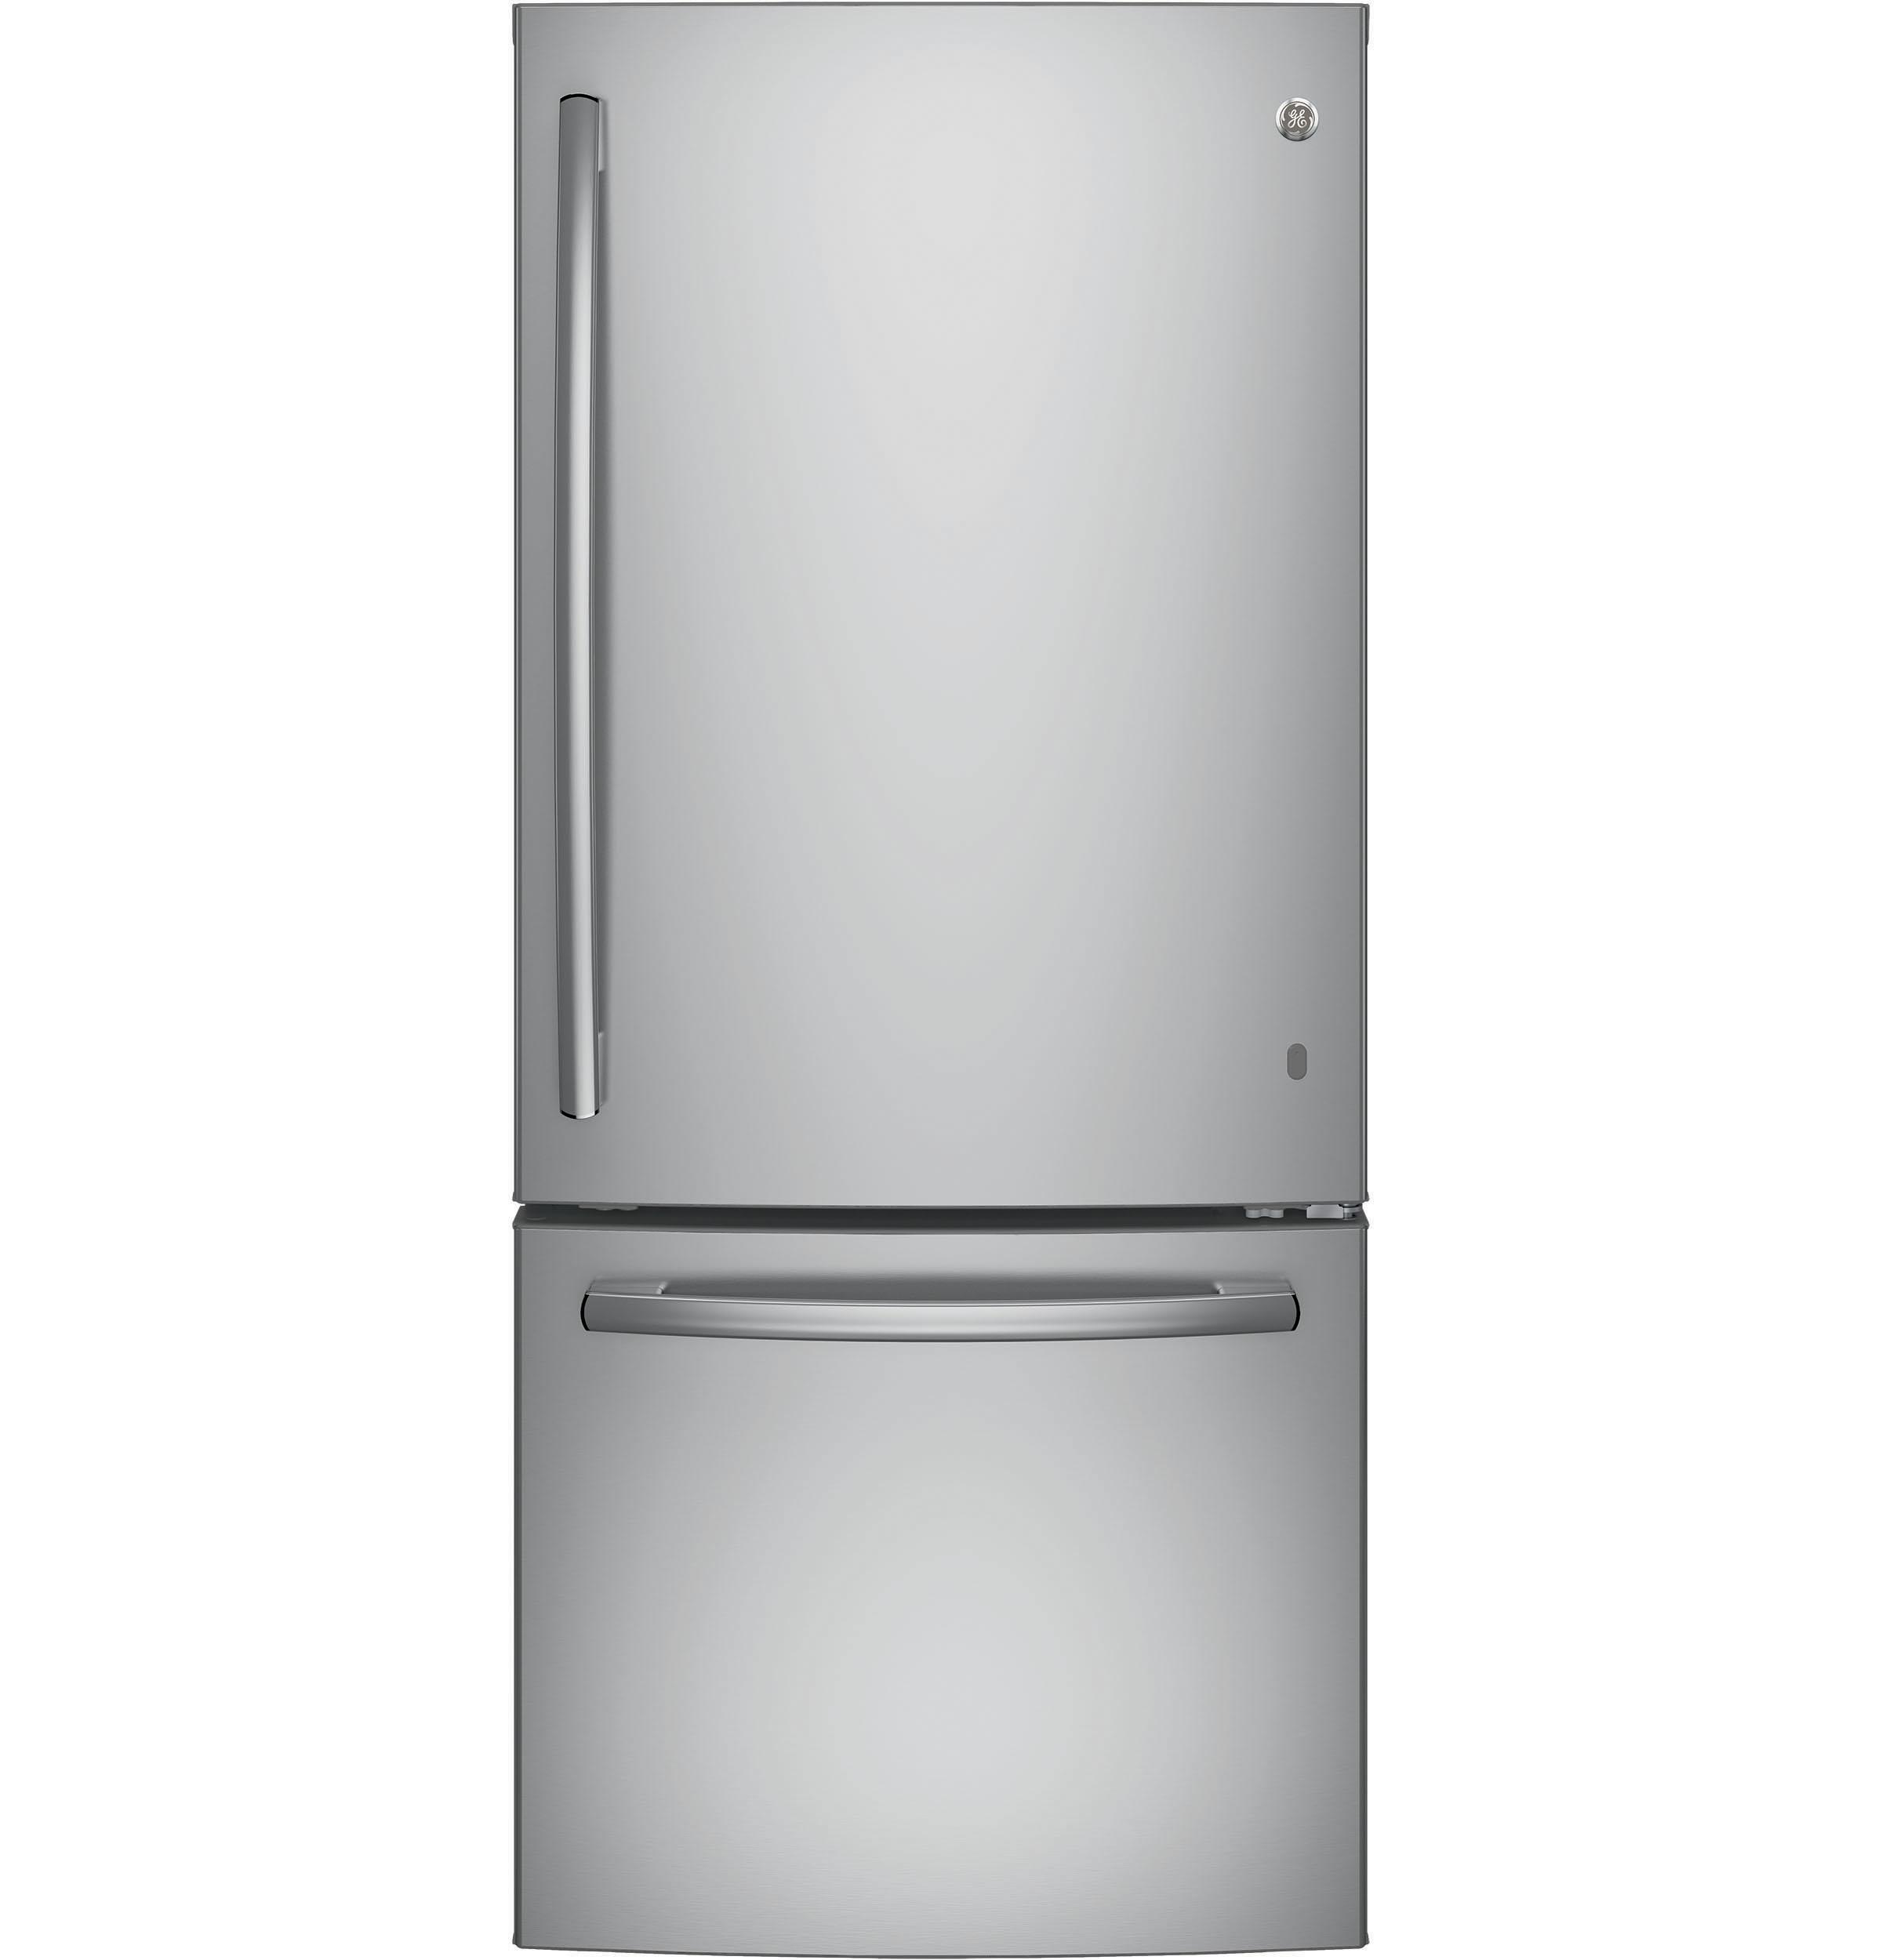 GE(R) ENERGY STAR(R) 21.0 Cu. Ft. Bottom-Freezer Refrigerator